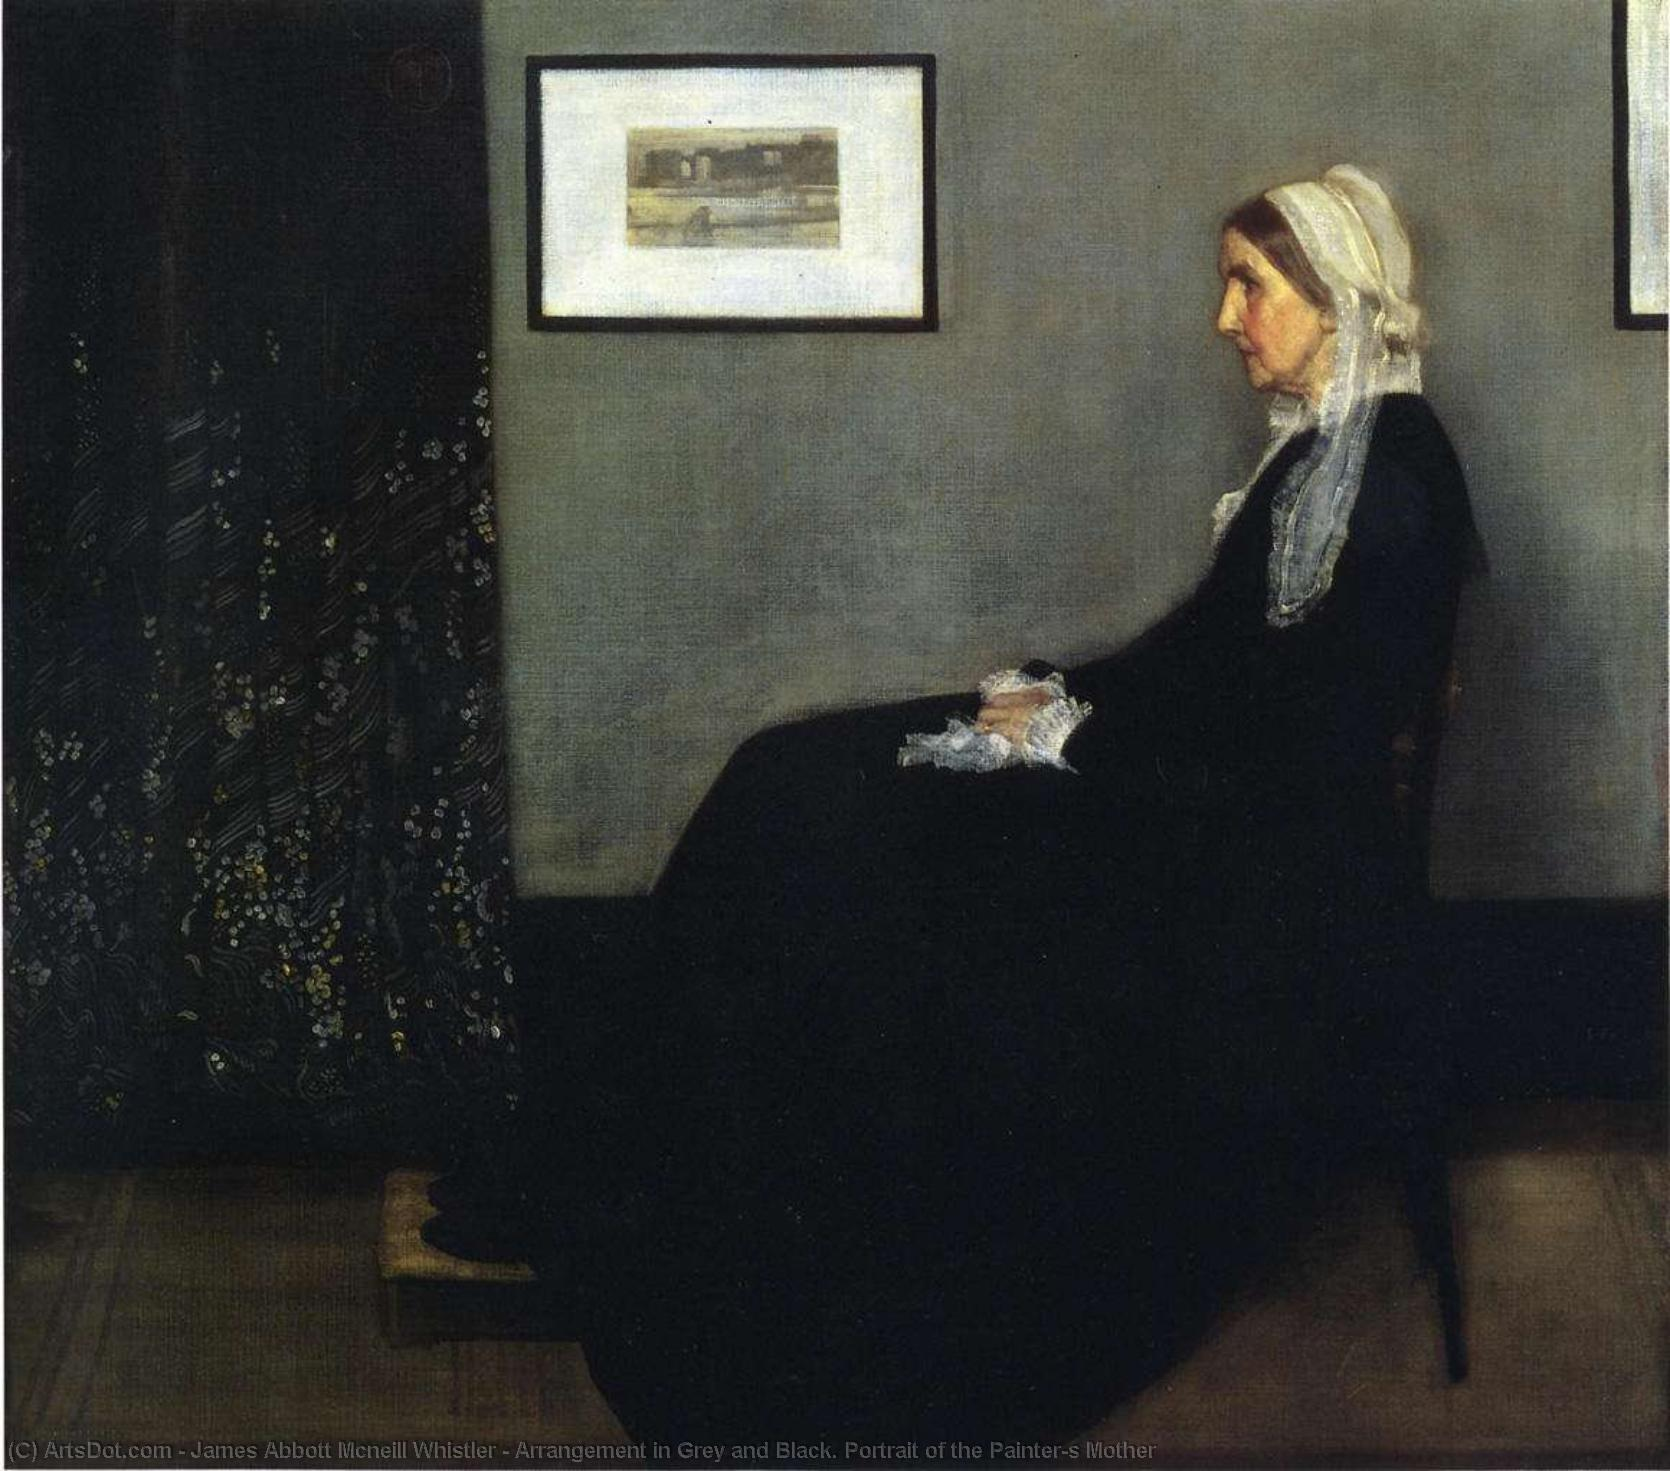 WikiOO.org - Encyclopedia of Fine Arts - Lukisan, Artwork James Abbott Mcneill Whistler - Arrangement in Grey and Black. Portrait of the Painter's Mother